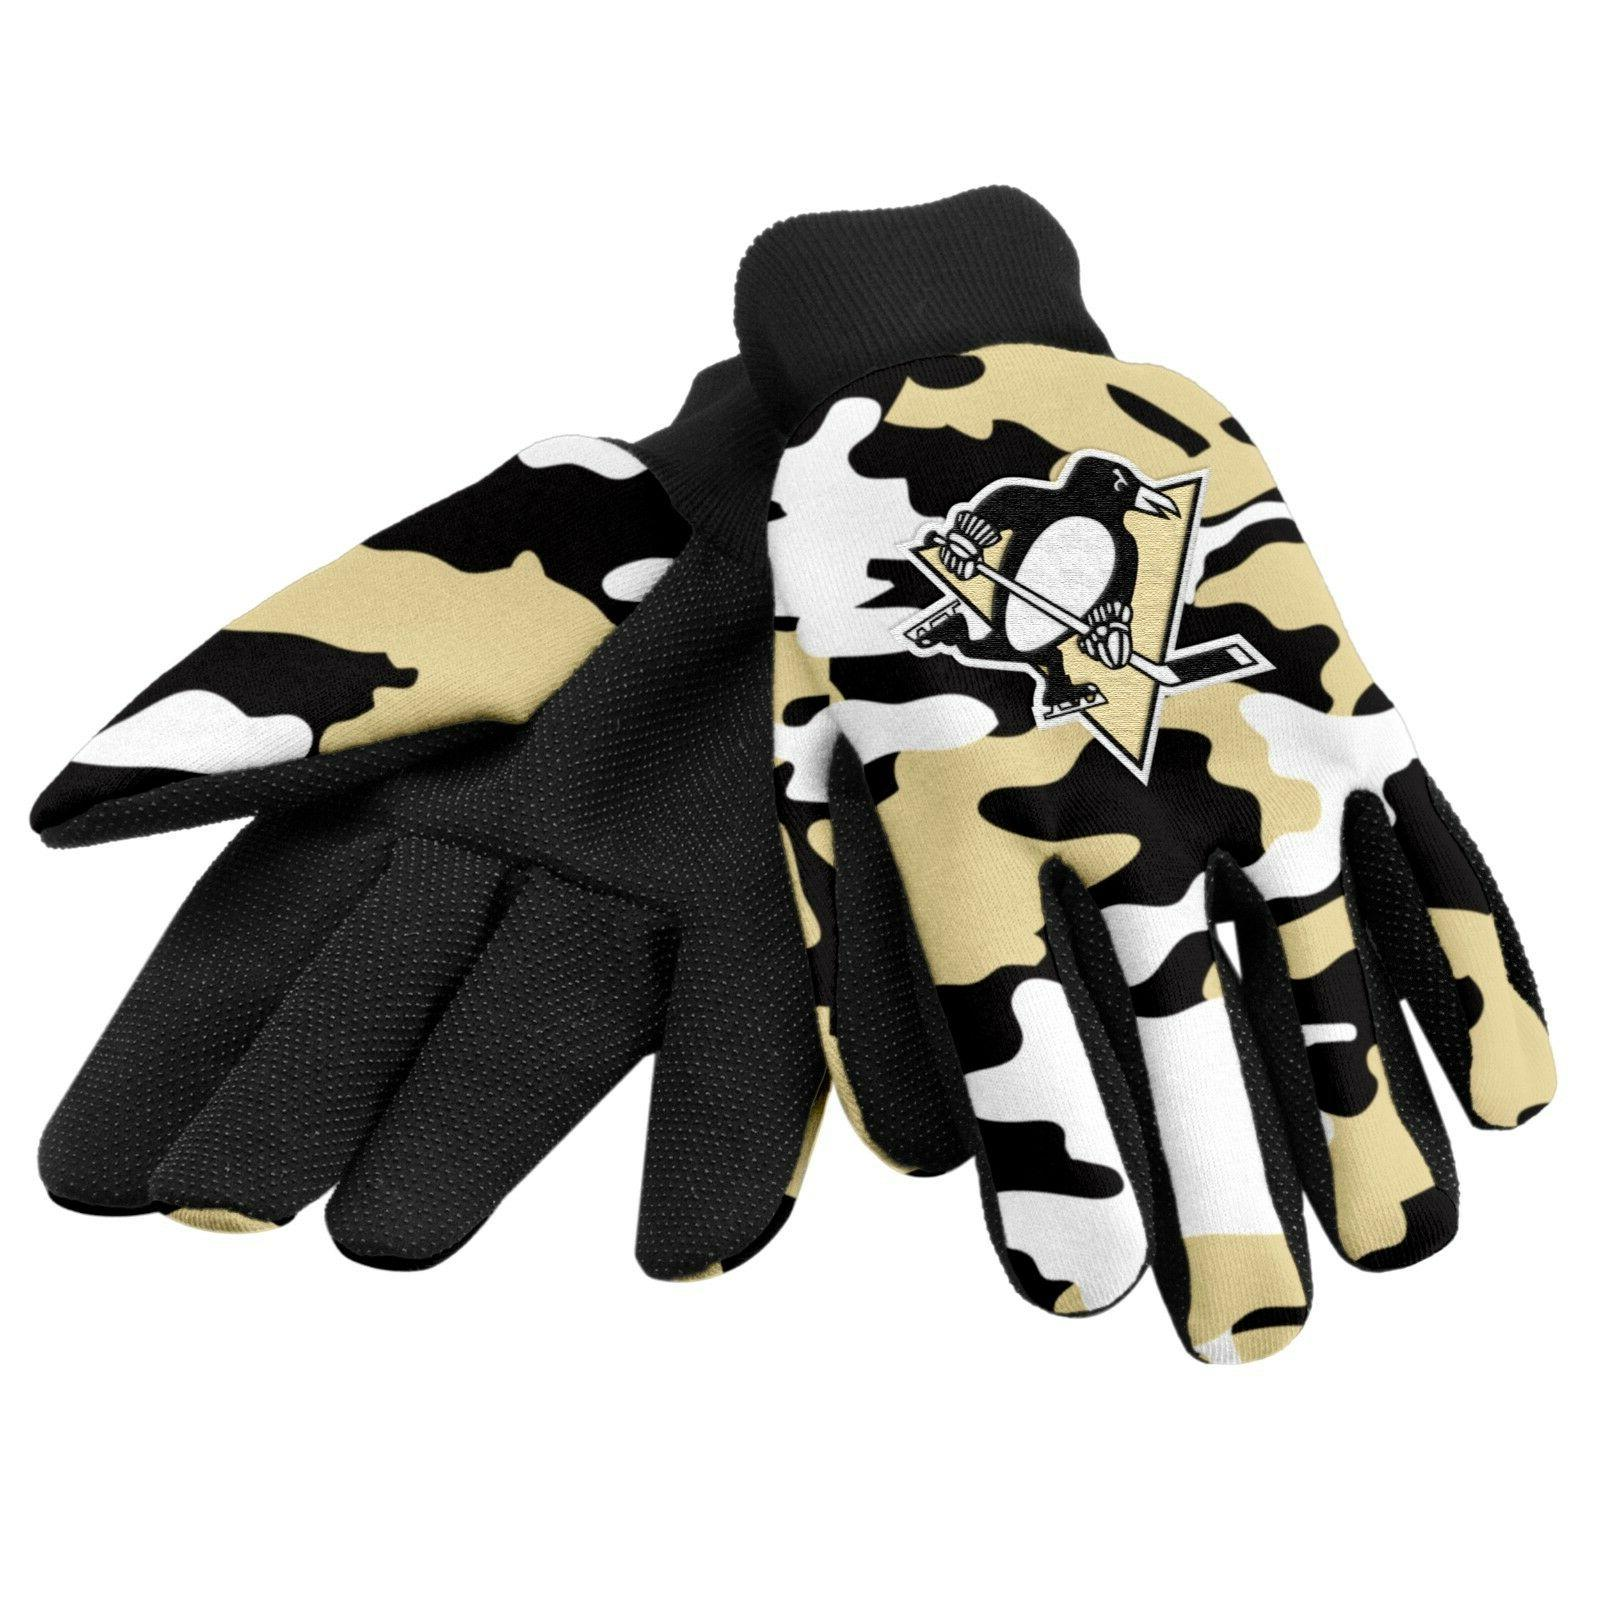 pittsburgh penguins camouflage sports utility gloves work